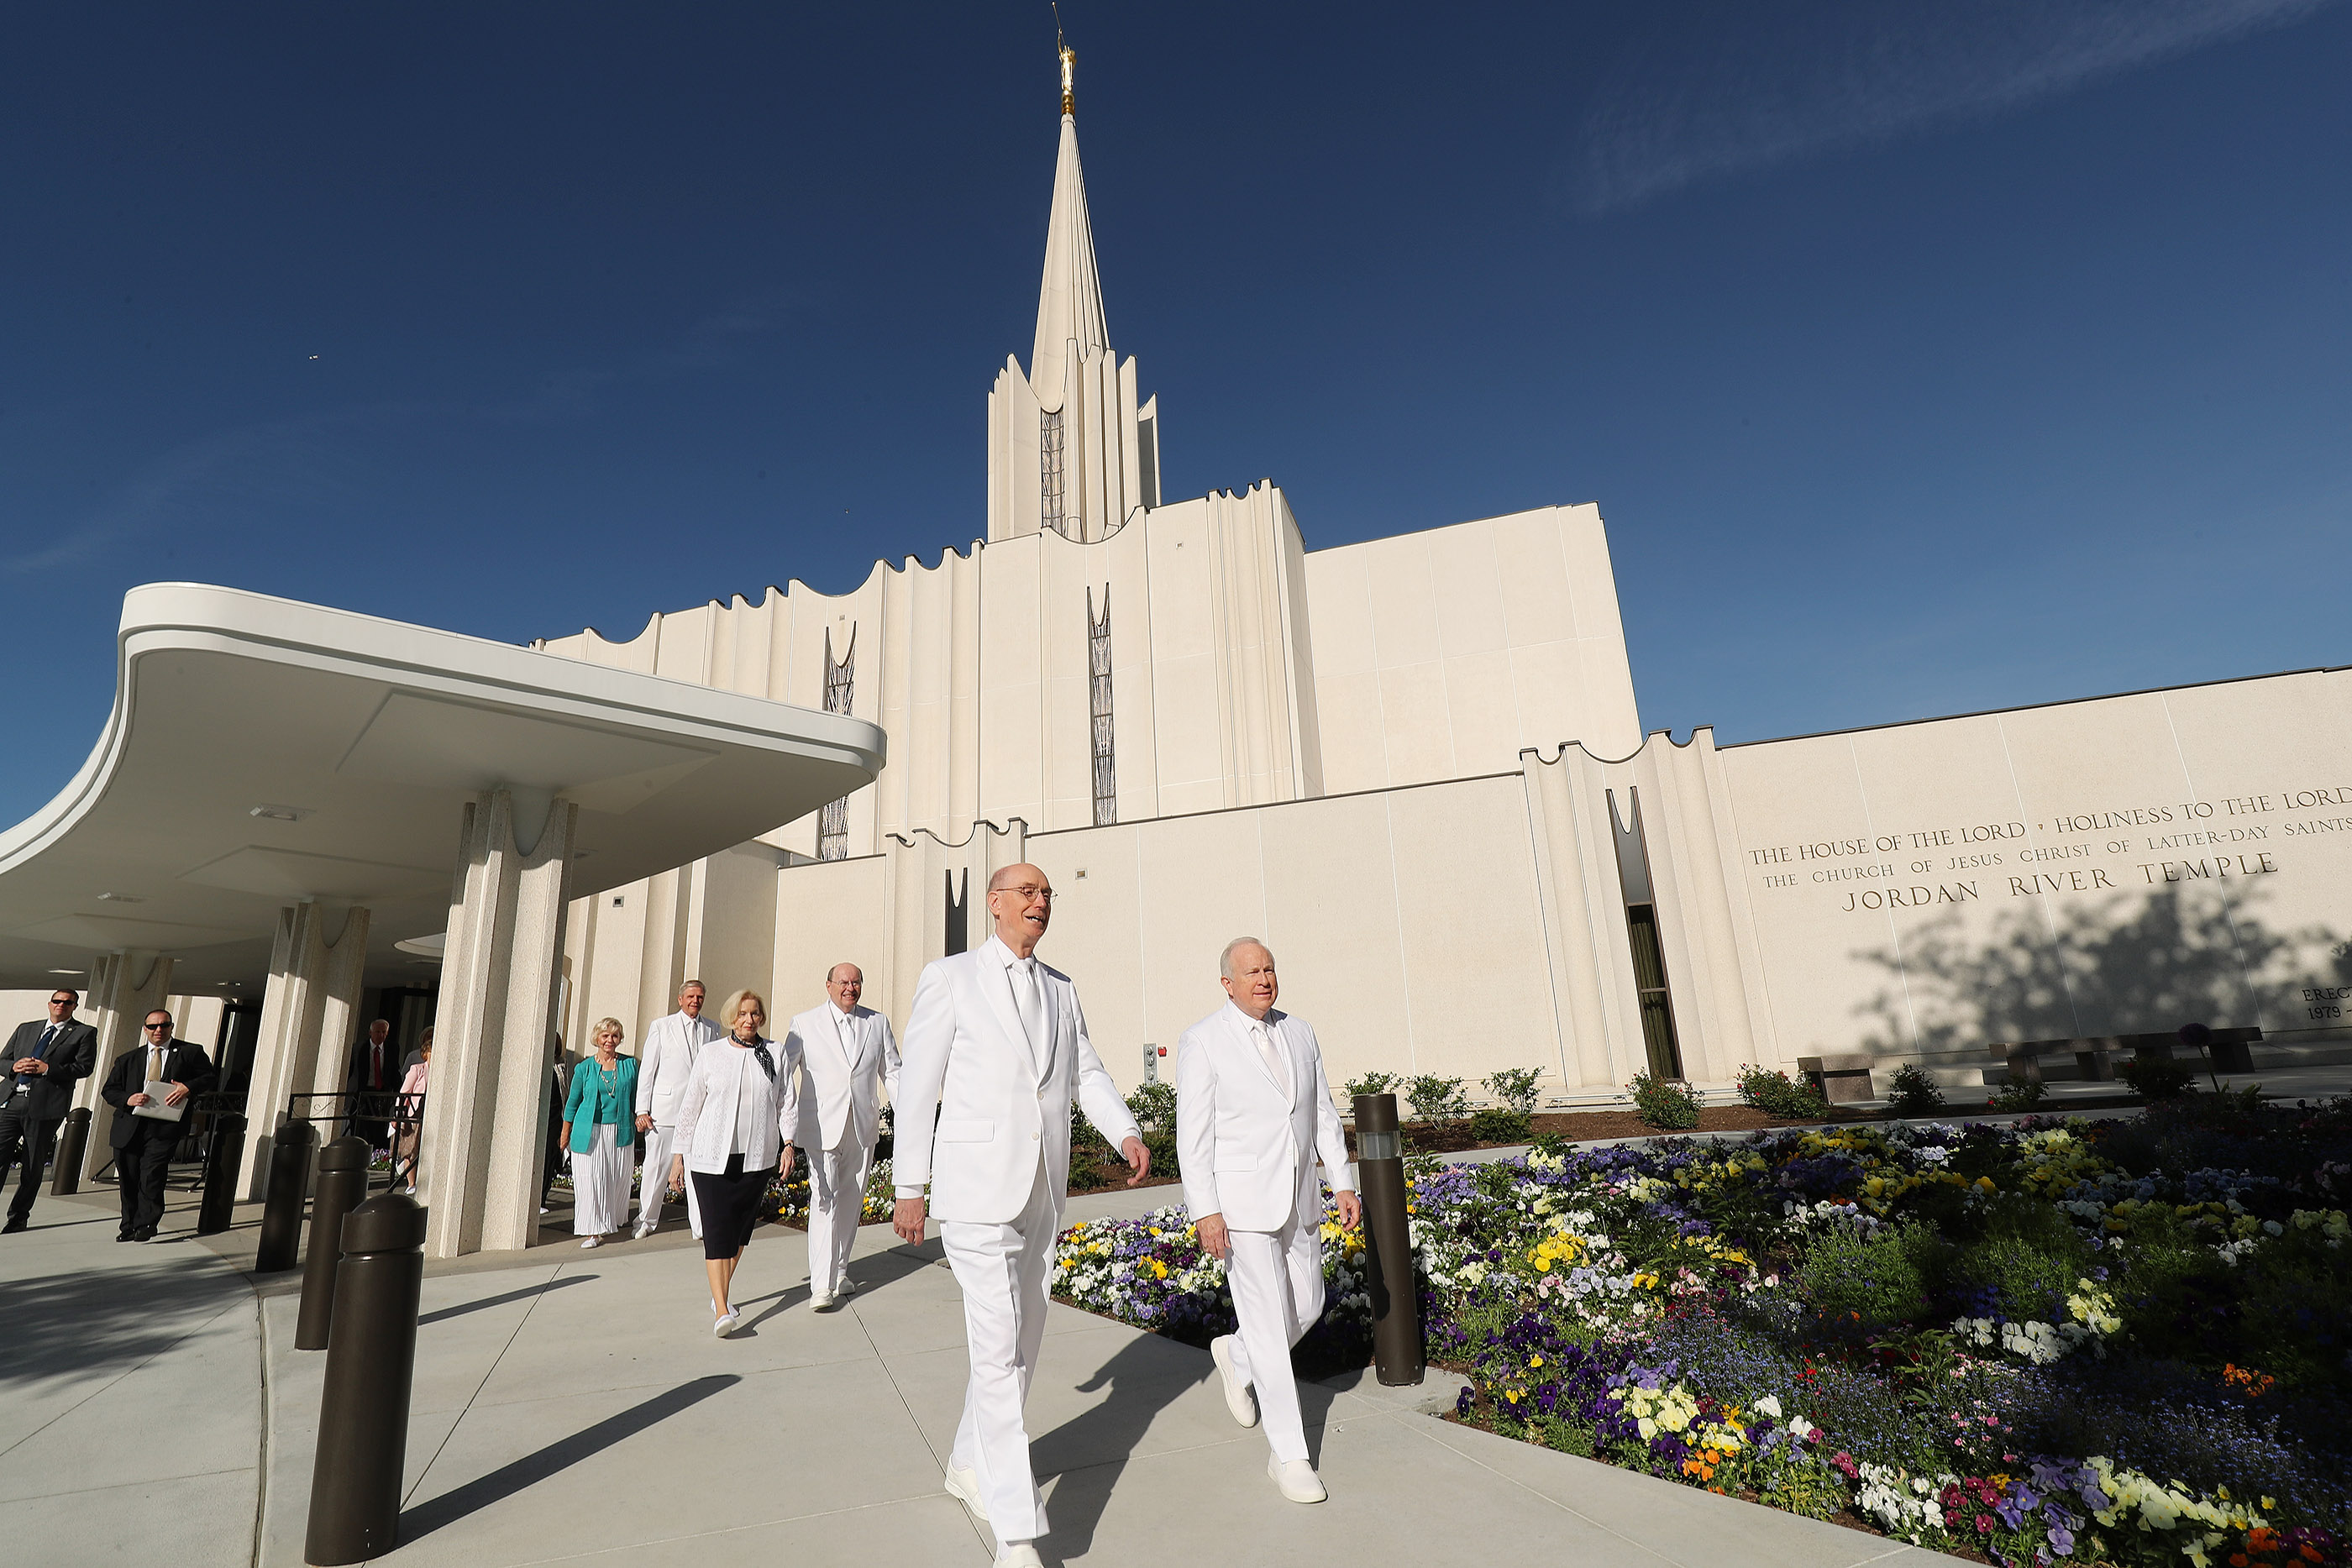 Henry B. Eyring, second counselor in the First Presidency, and Quentin L. Cook of the Quorum of the Twelve walk outside the Jordan River Utah Temple during rededication in South Jordan on Sunday, May 20, 2018.